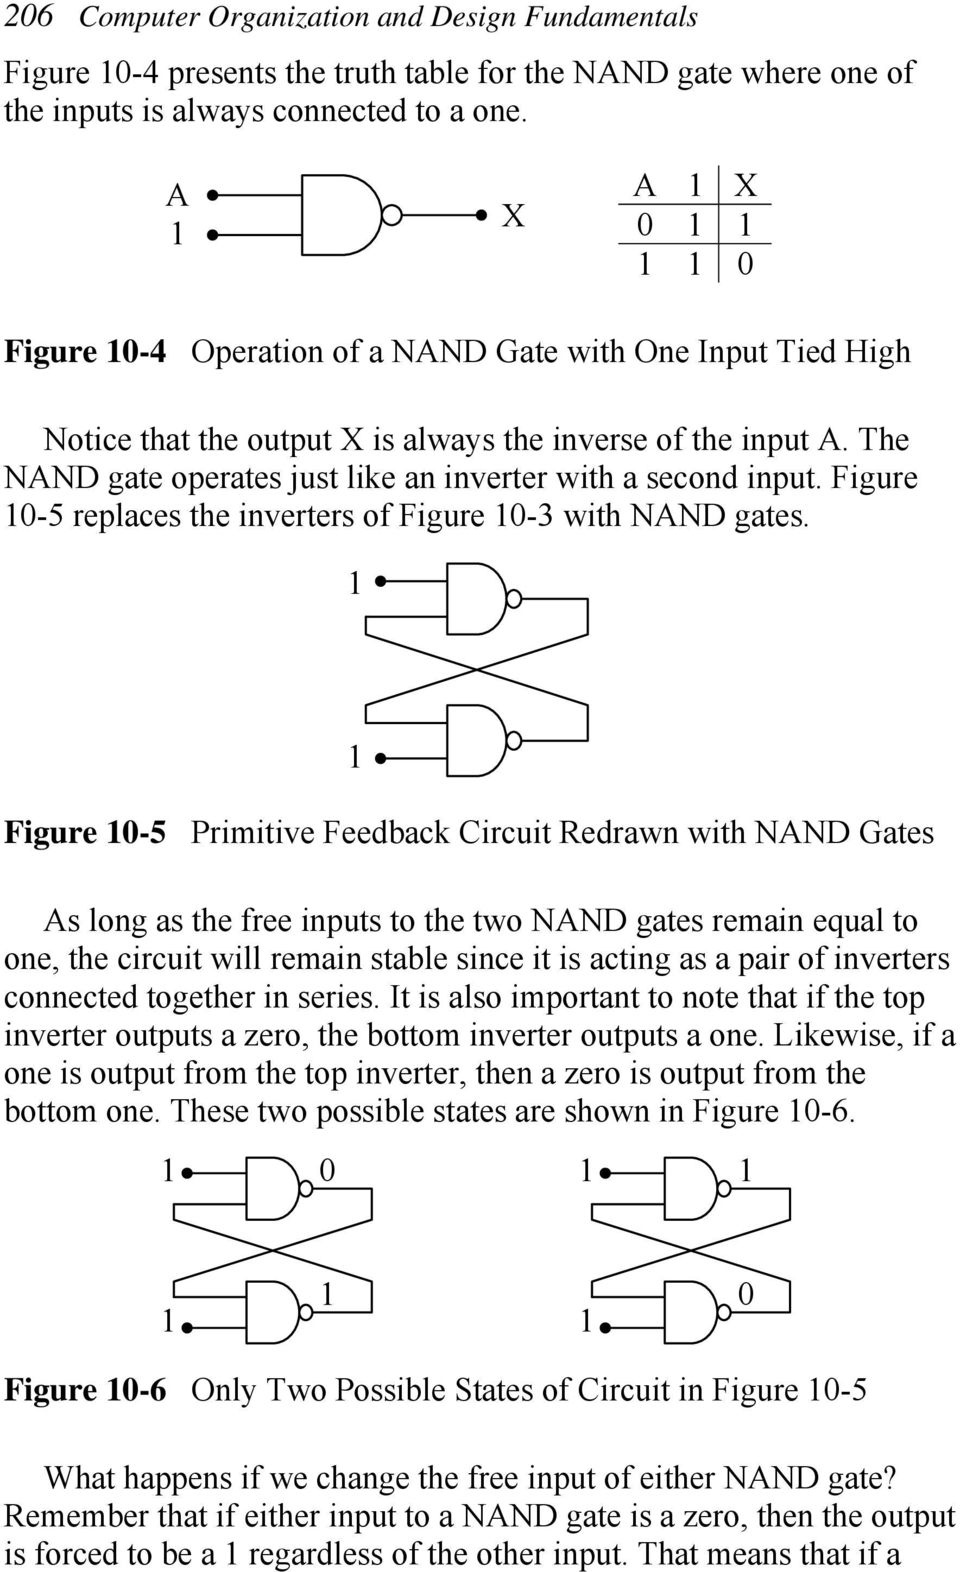 Figure -5 replaces the inverters of Figure -3 with NAN gates.